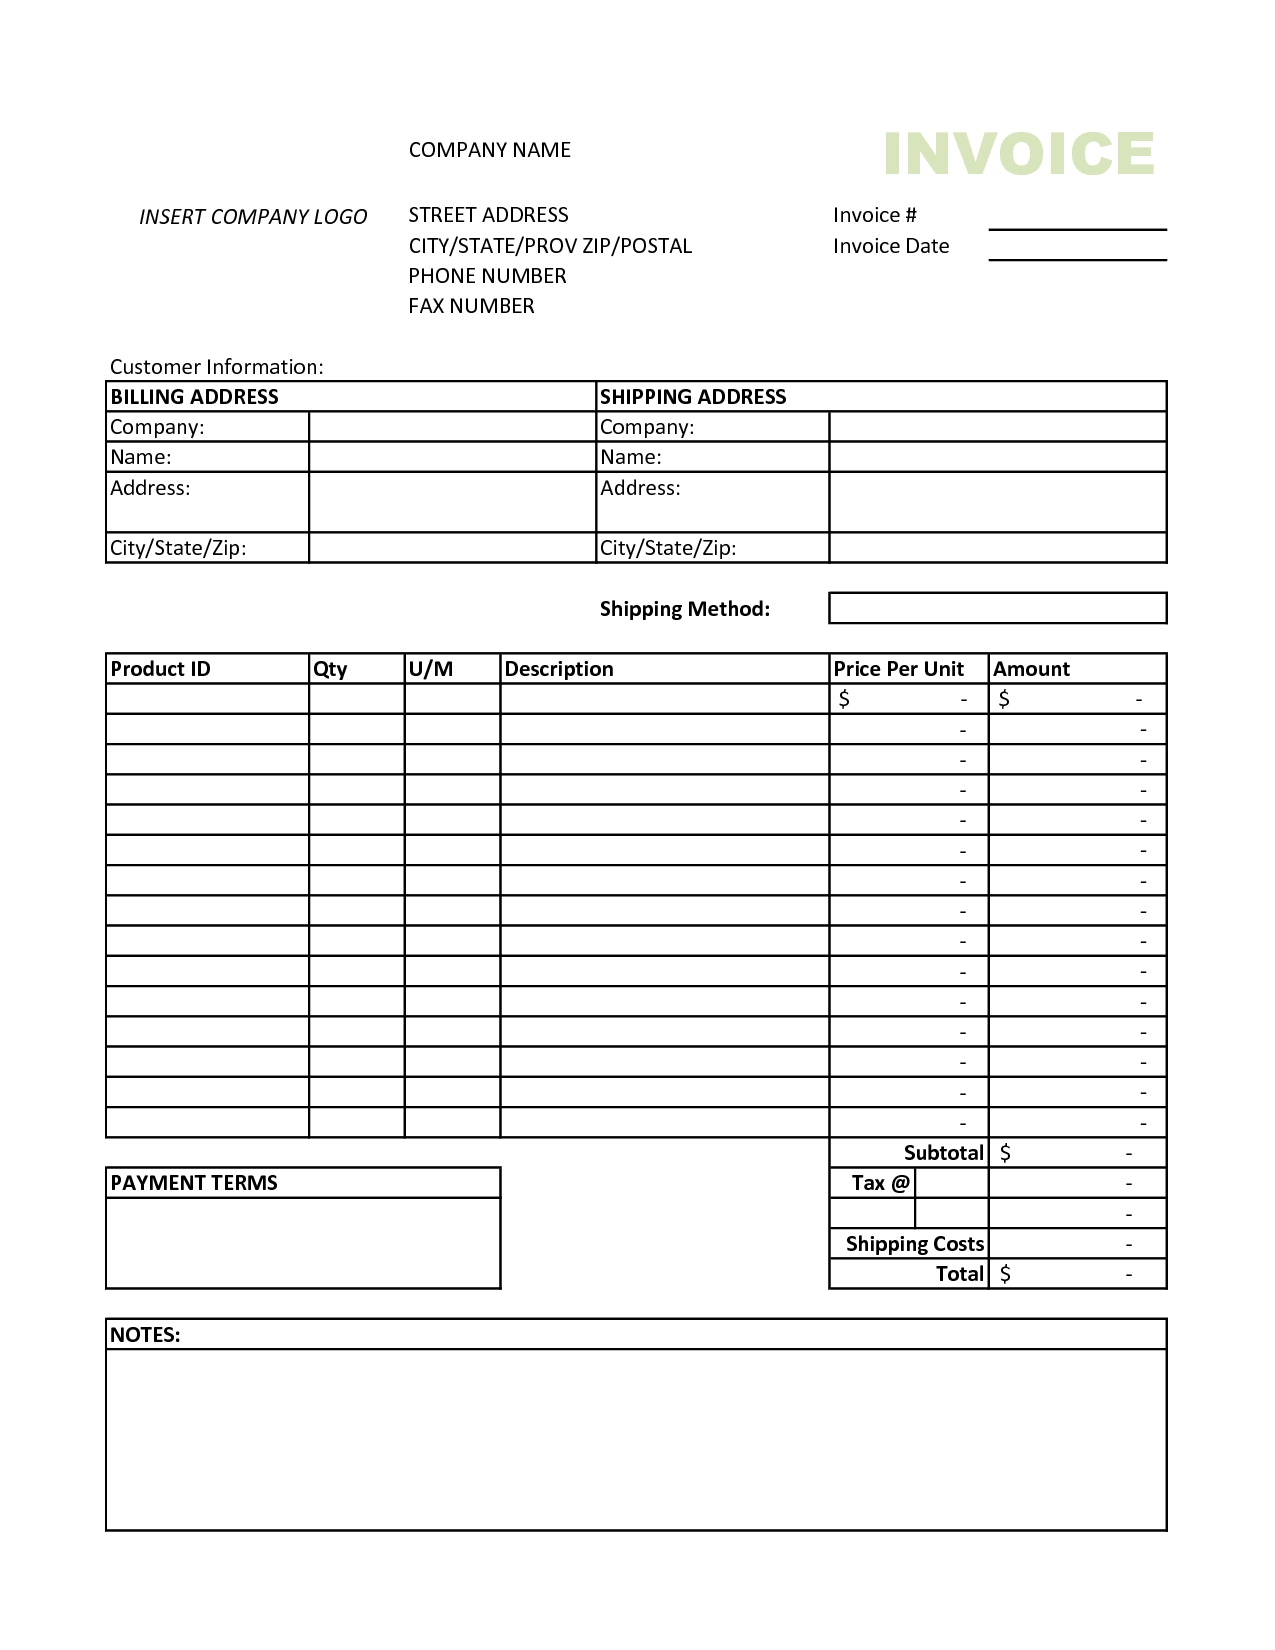 invoice template excel dhuidddynu invoice template for excel 2010